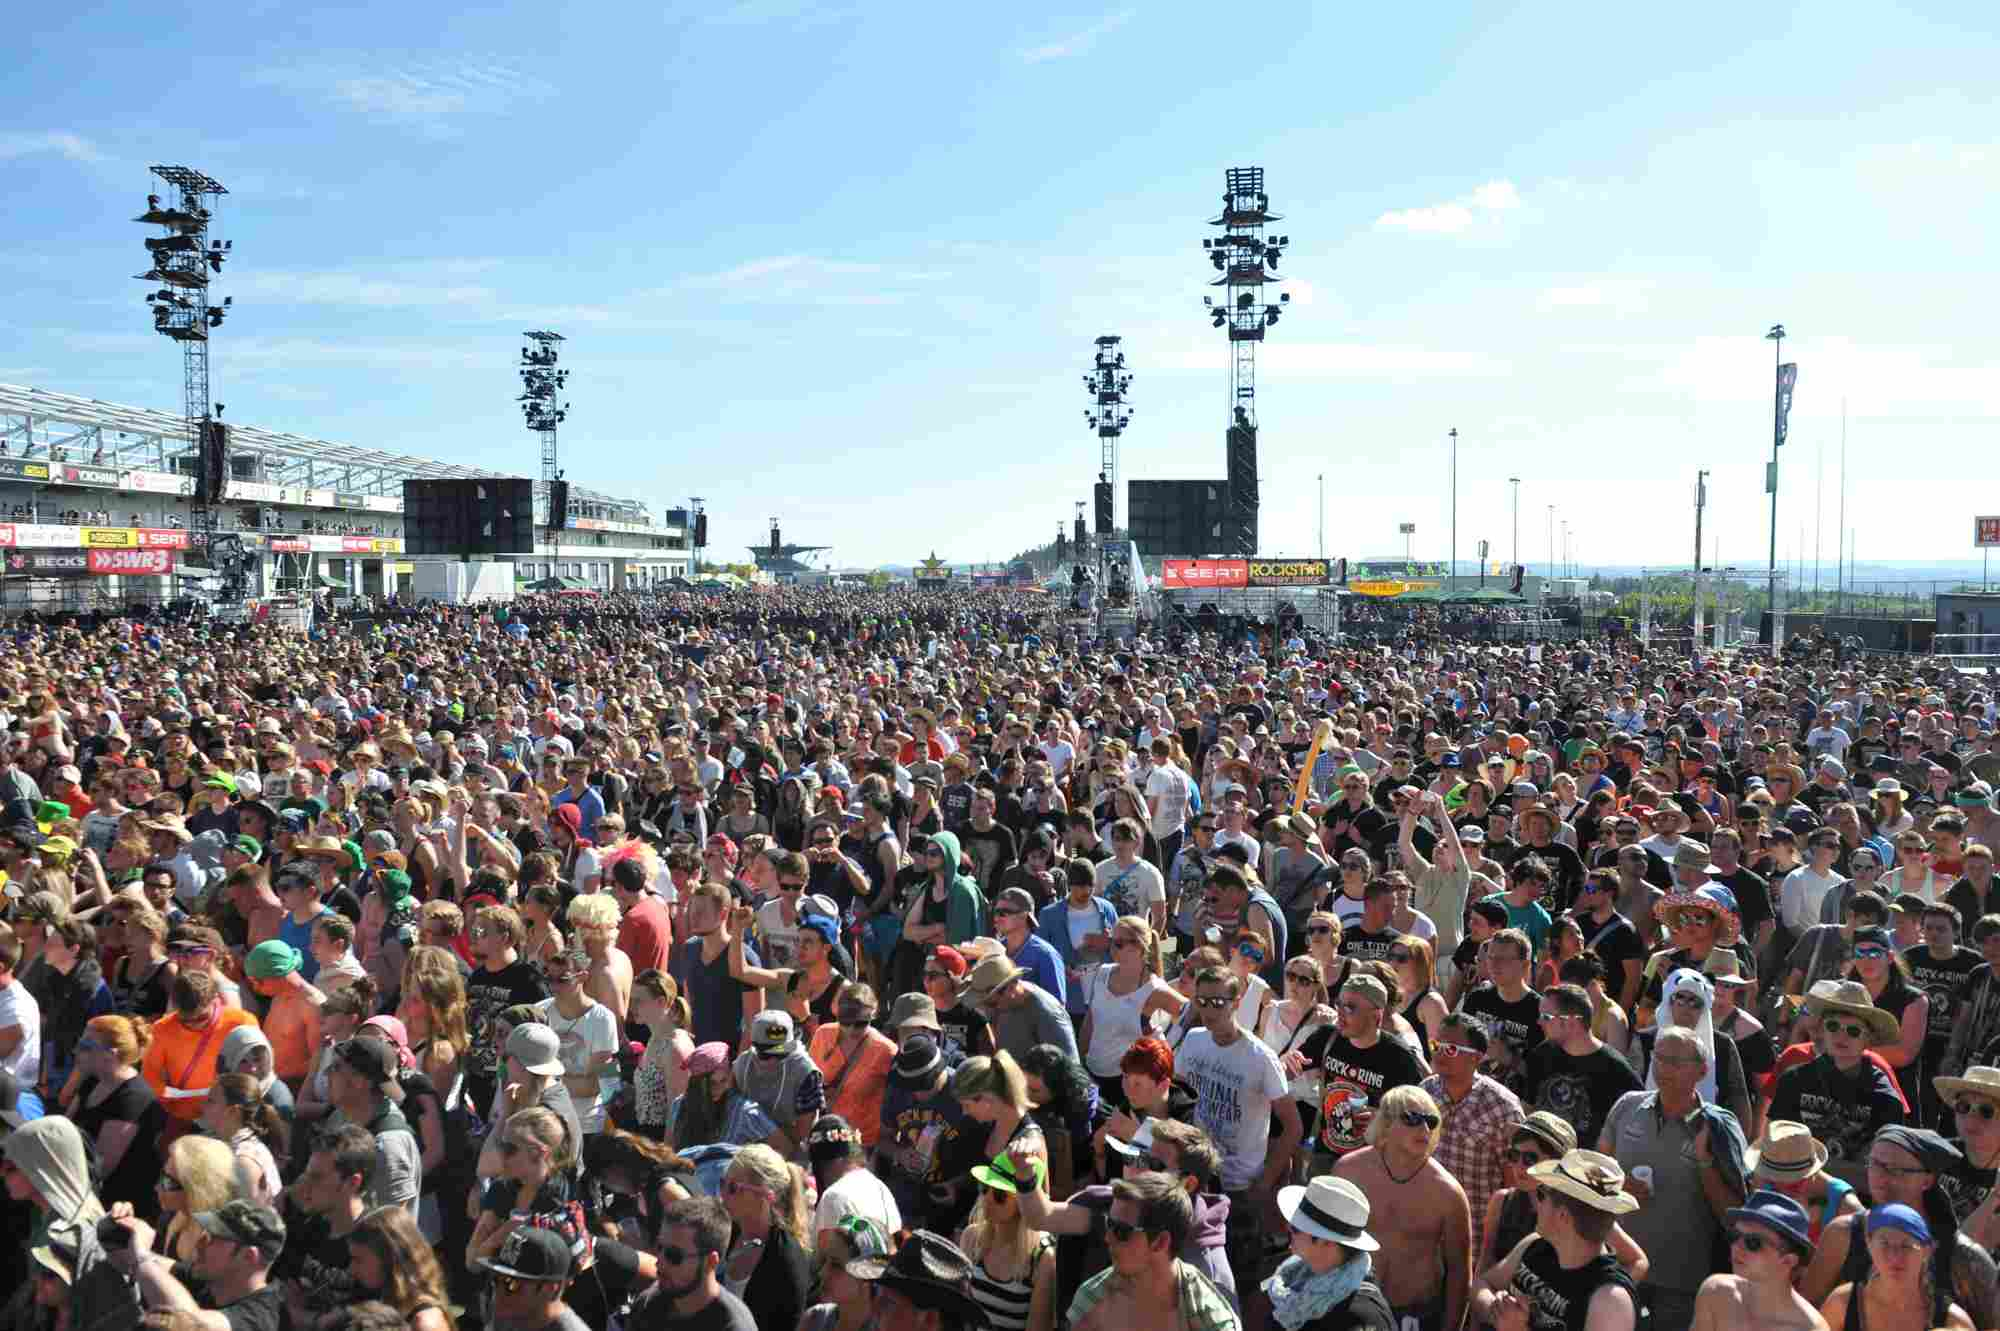 A view of the massive crowd at the Rock am Ring festival